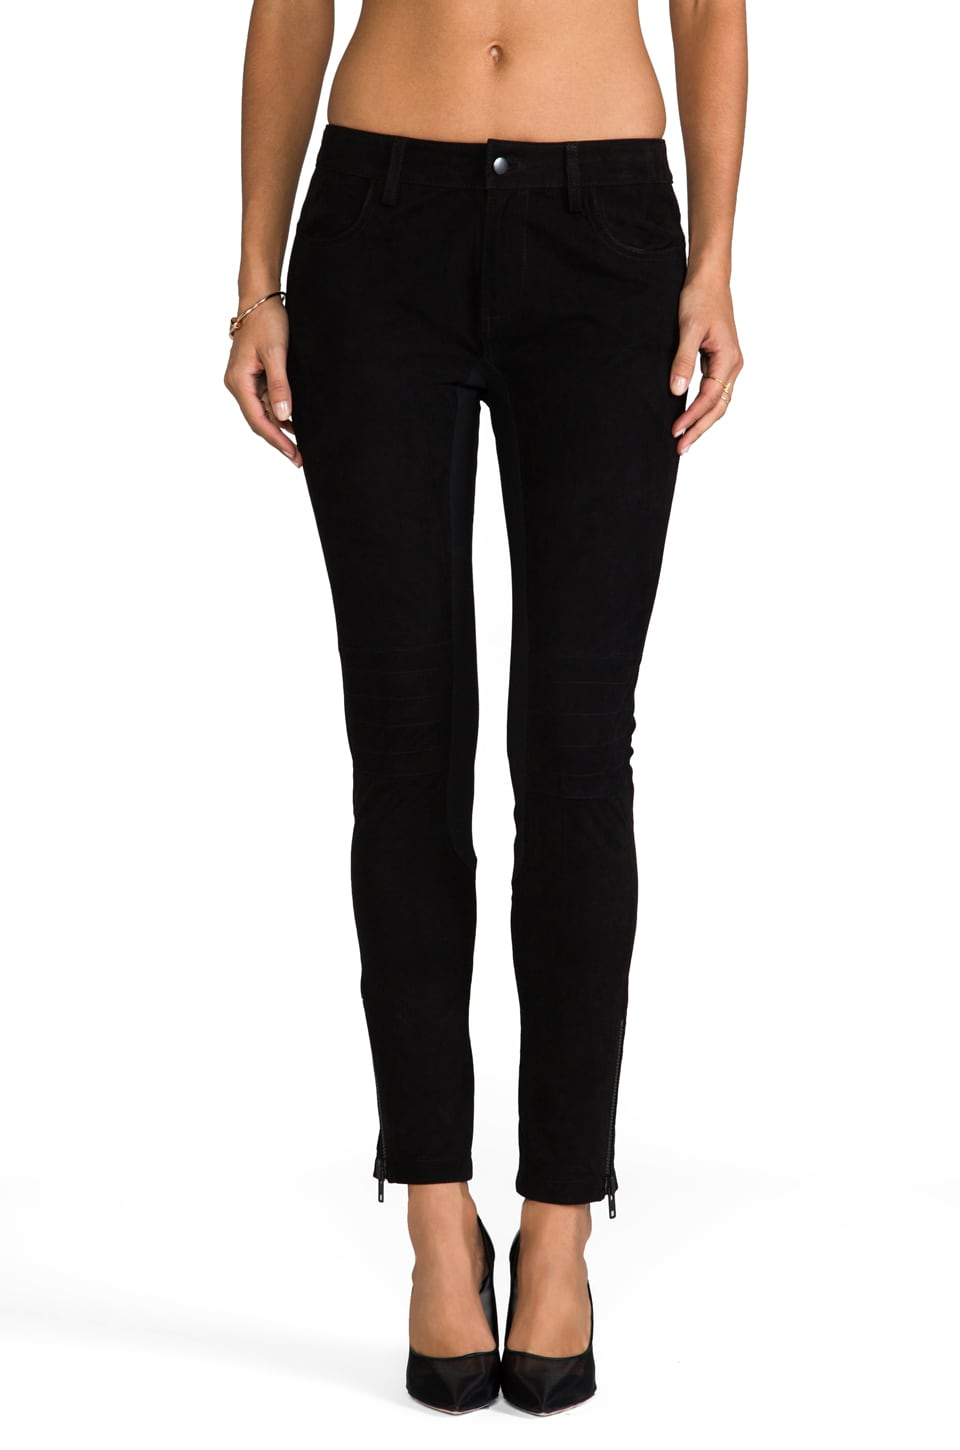 April, May Seven Suede Pants in Black